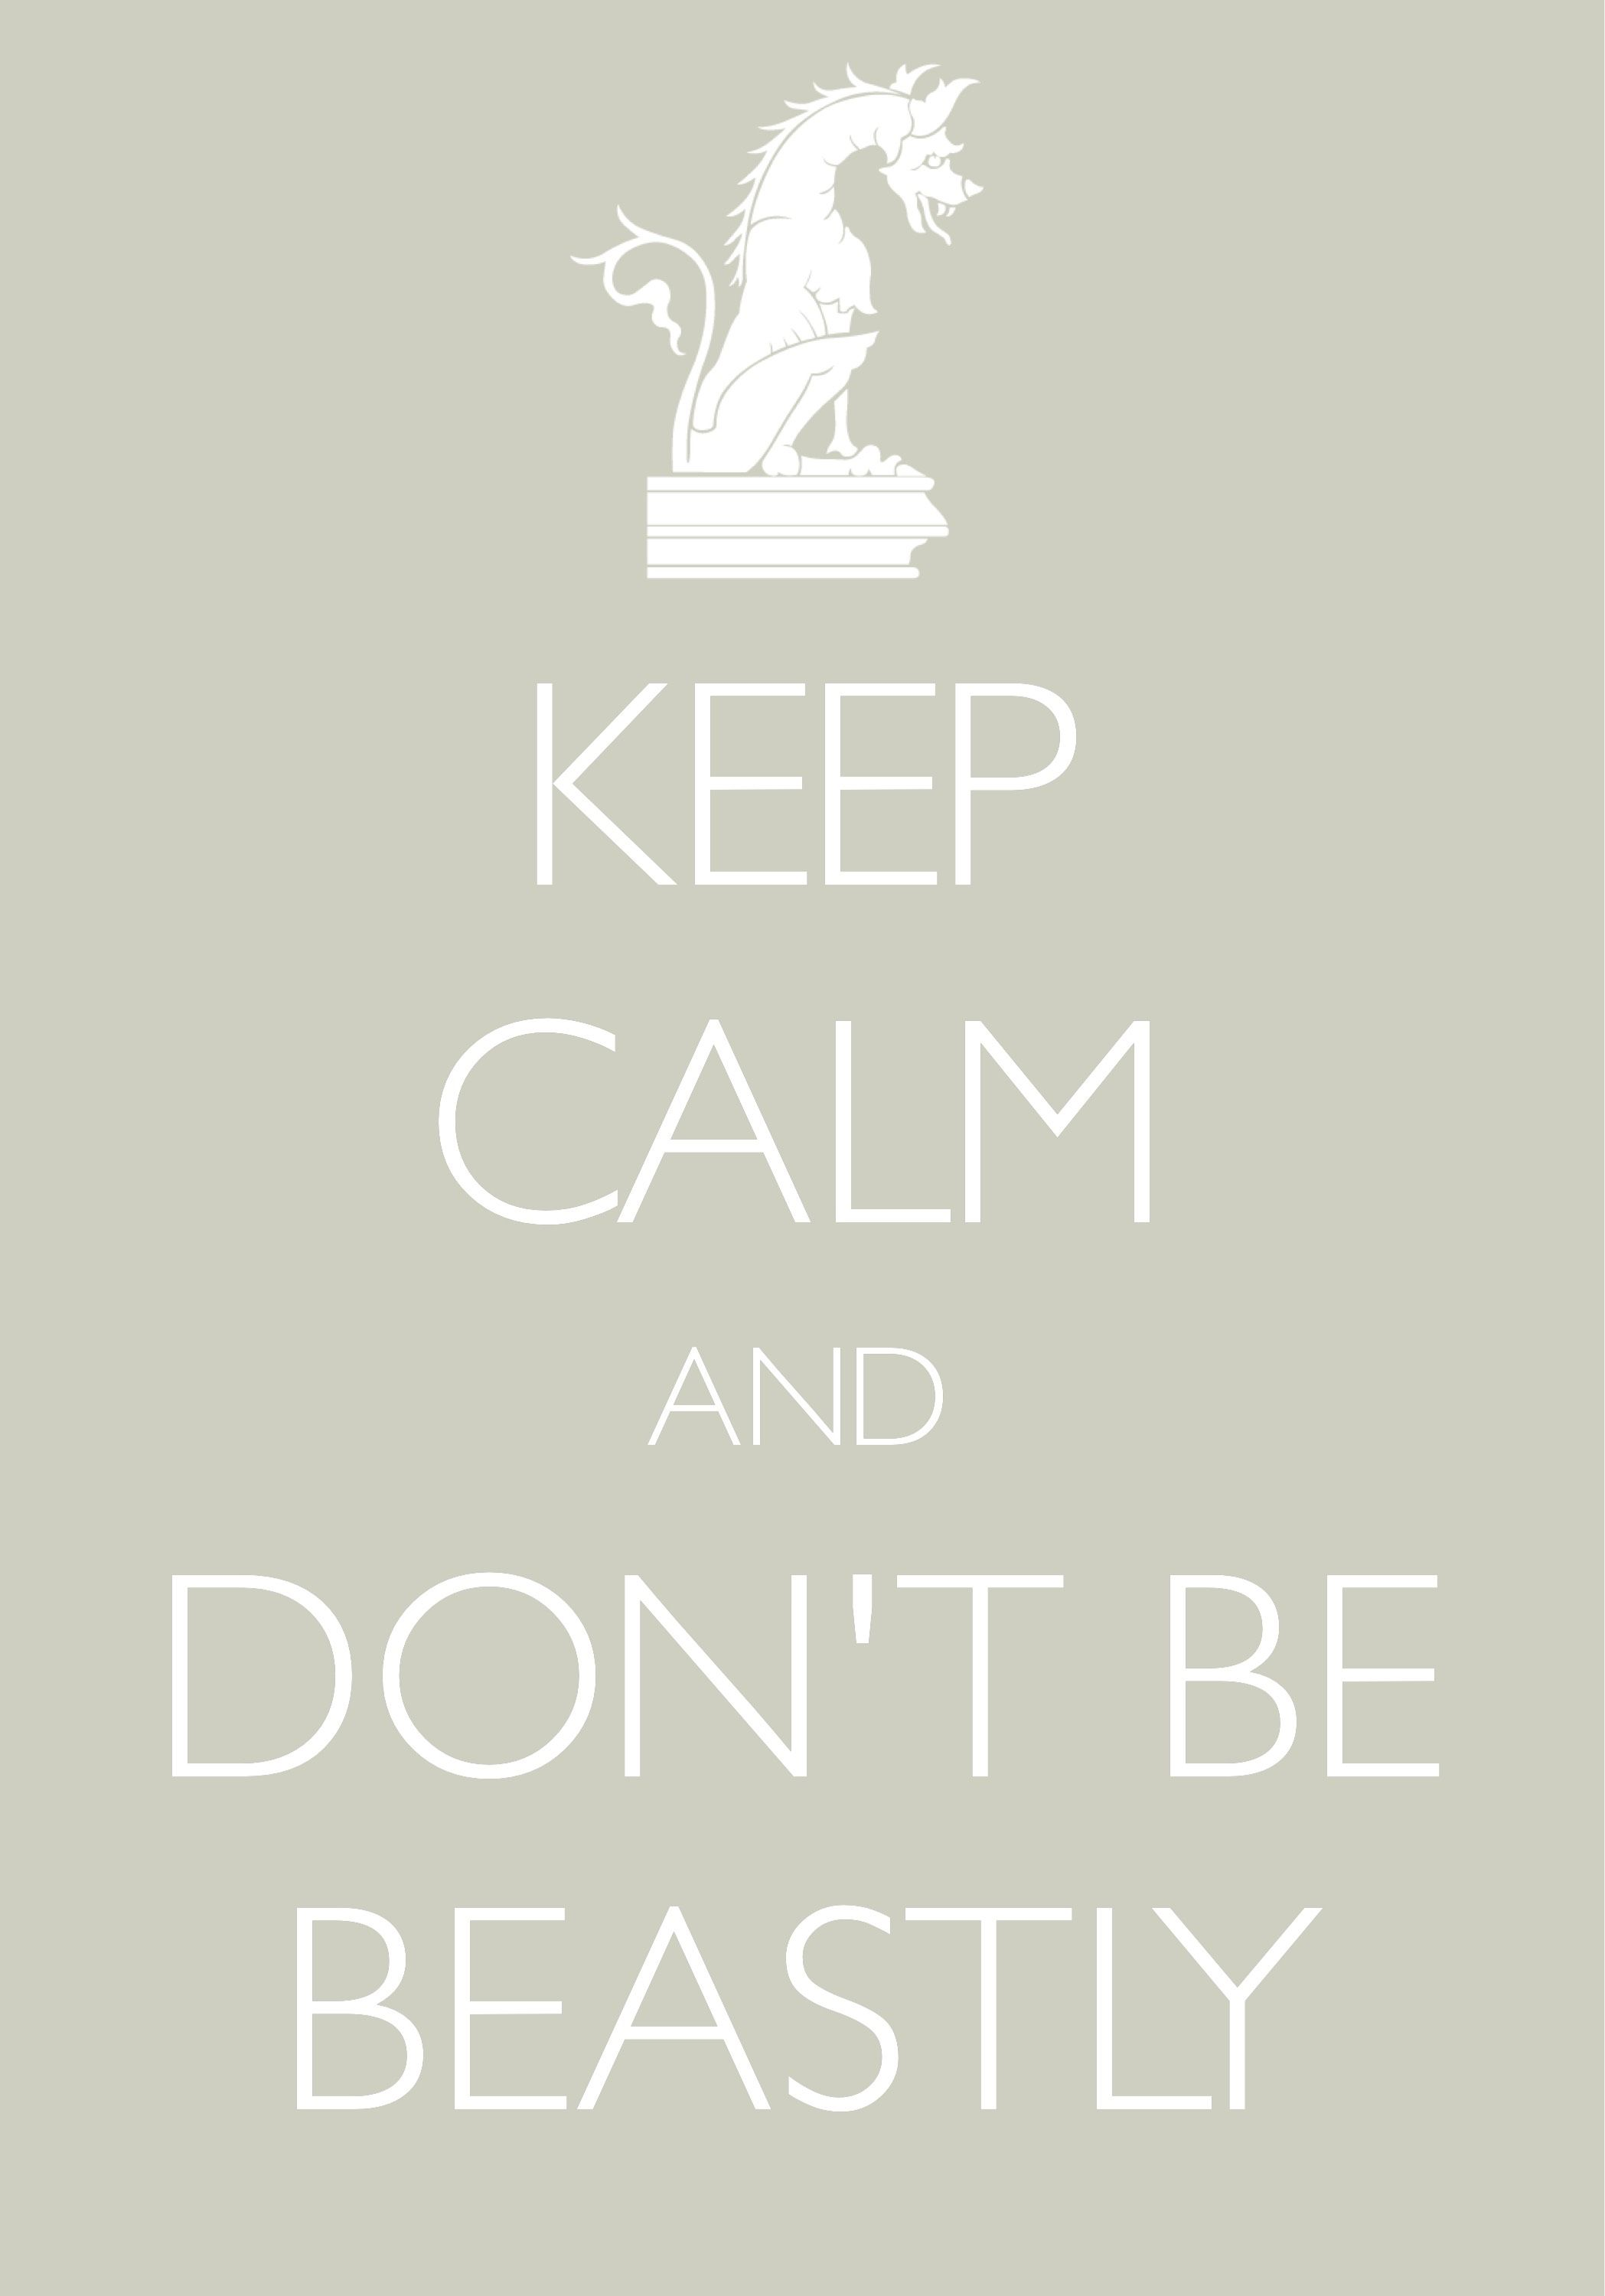 keep calm and don't be beastly / Created with Keep Calm and Carry On for iOS #keepcalm